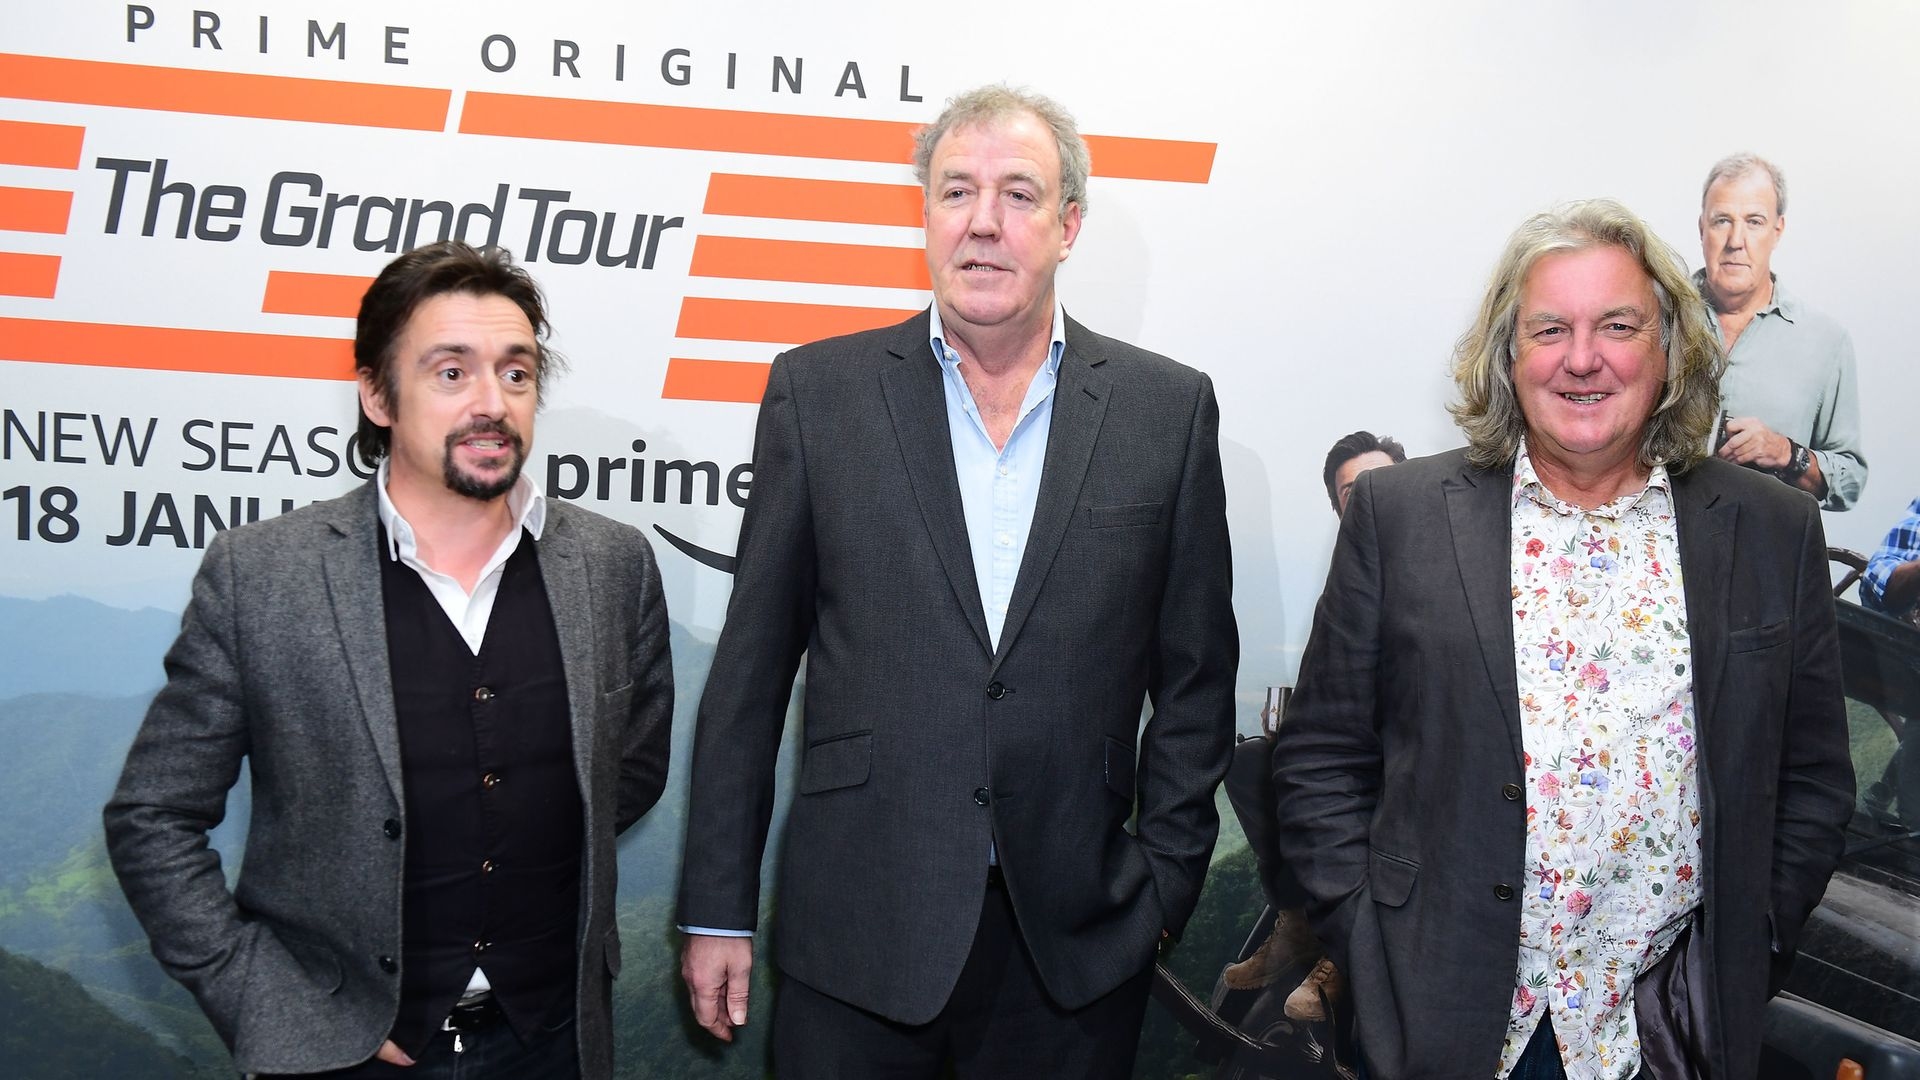 Richard Hammond, Jeremy Clarkson and James May host Amazon Prime Video's Grand Tour series. - Credit: PA